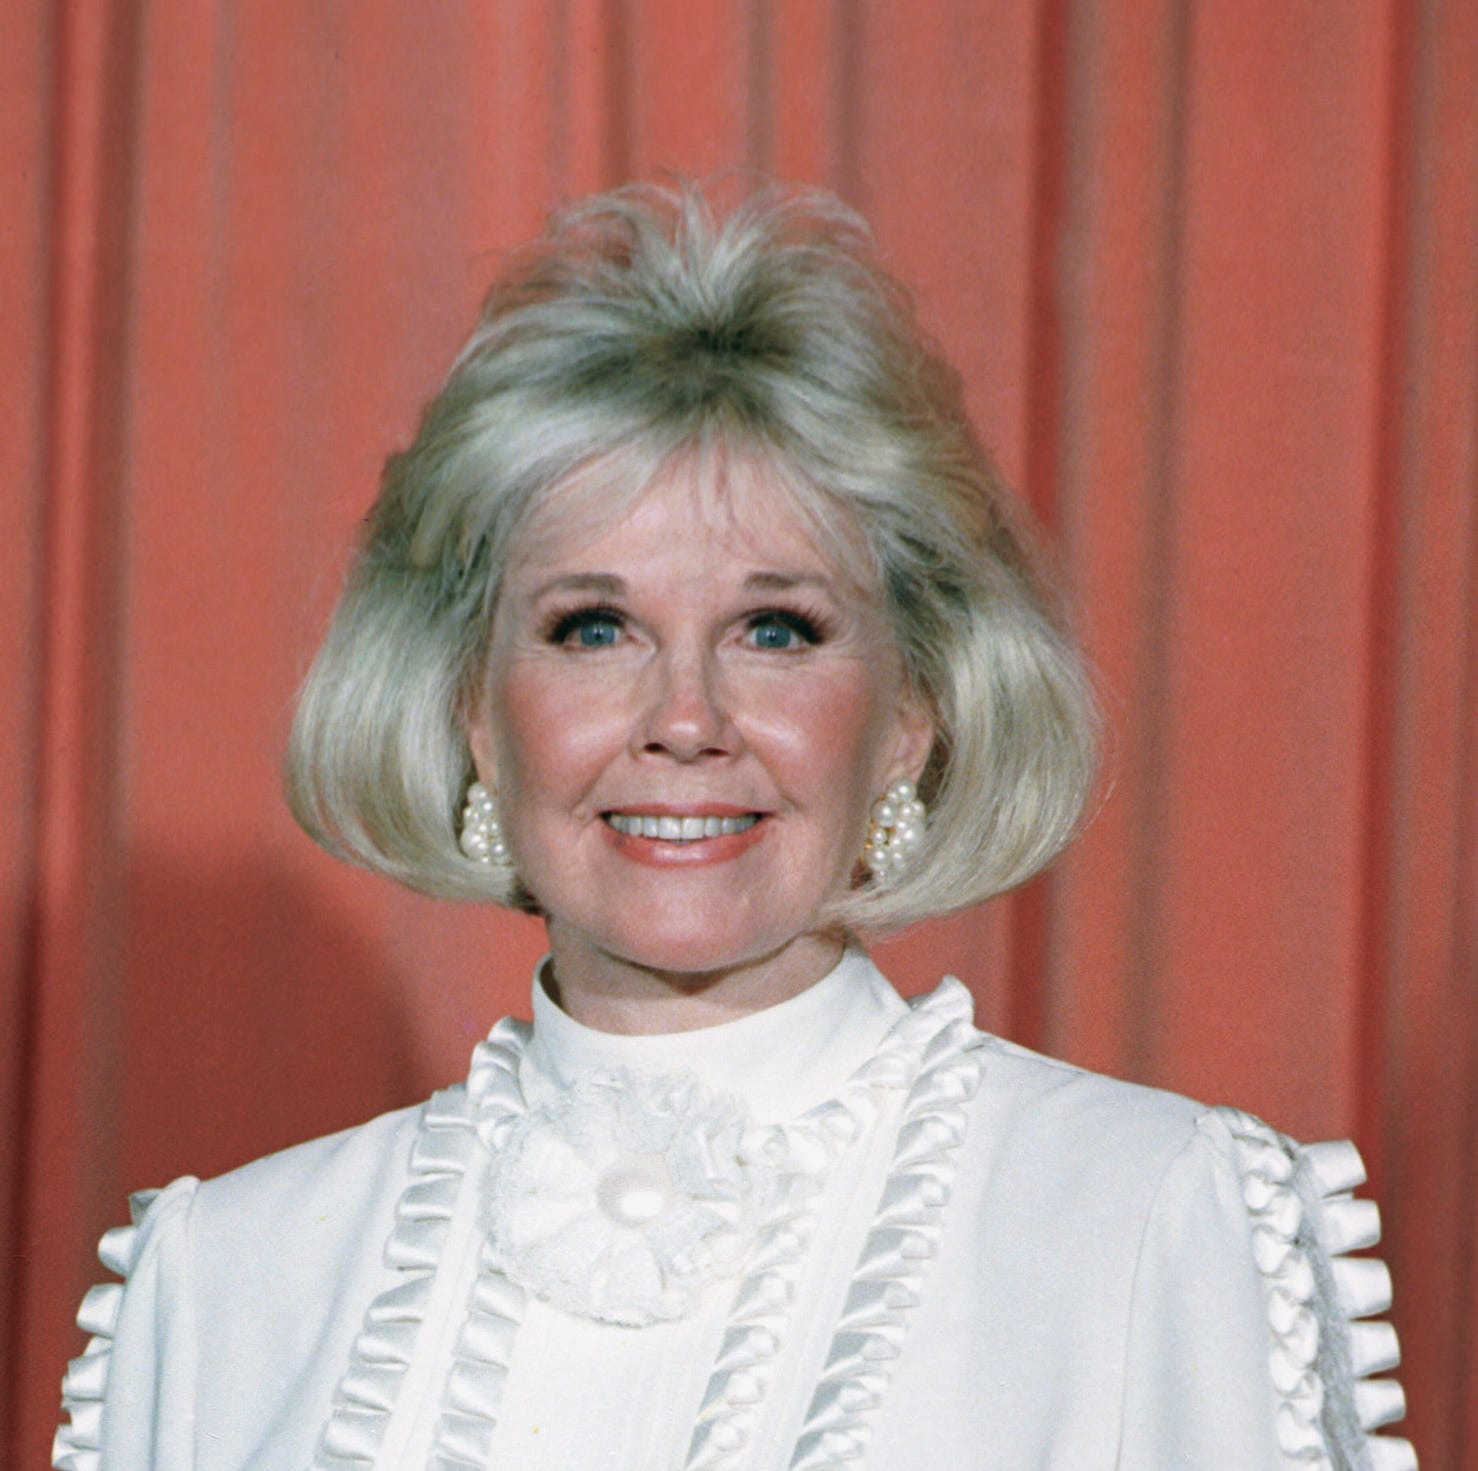 Hollywood legend Doris Day dead at 97